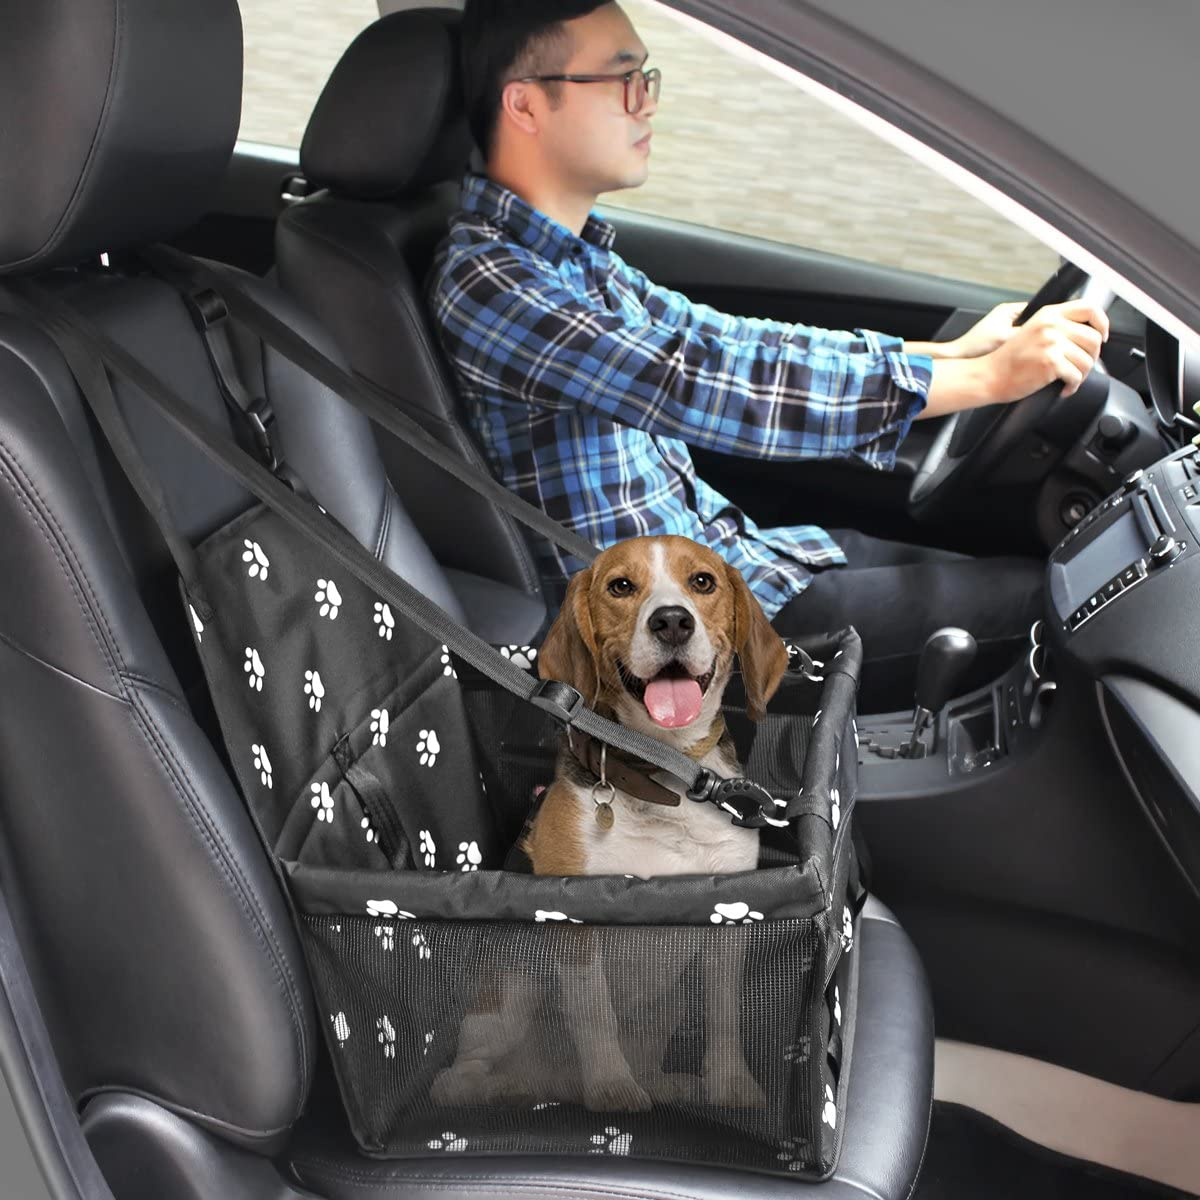 HIPPIH Collapsible Pet Booster Car Seat - 2 Support Bars, Portable Small Dog Cat Car Carrier with Safety Leash and Zipper Storage Pocket (Black with paw Prints) : Pet Supplies